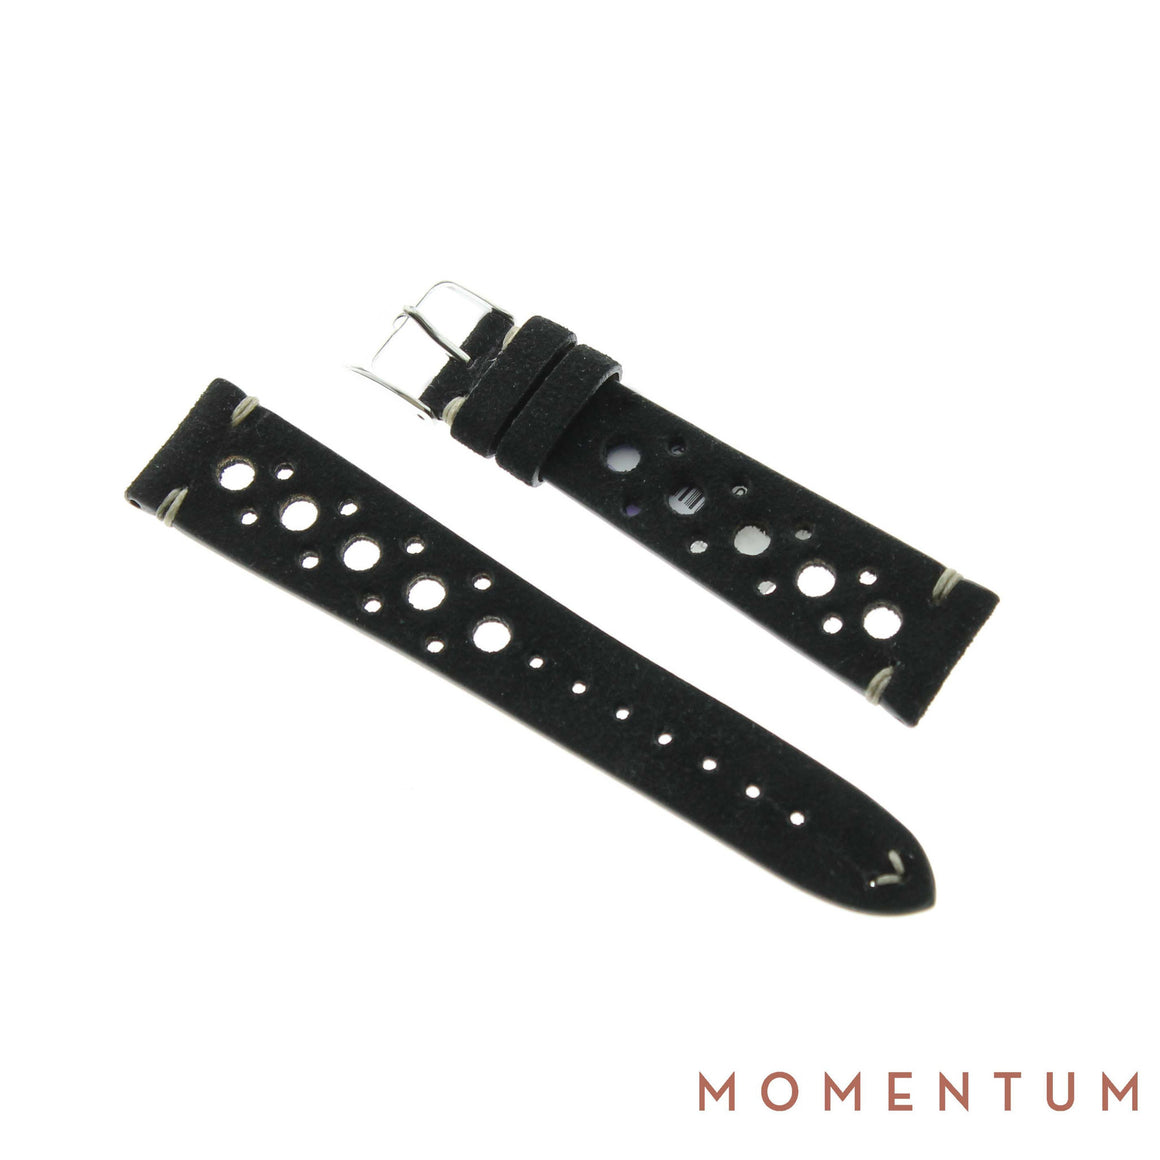 Vintage Strap - Black Suede with holes - Calf Leather - Momentum Dubai